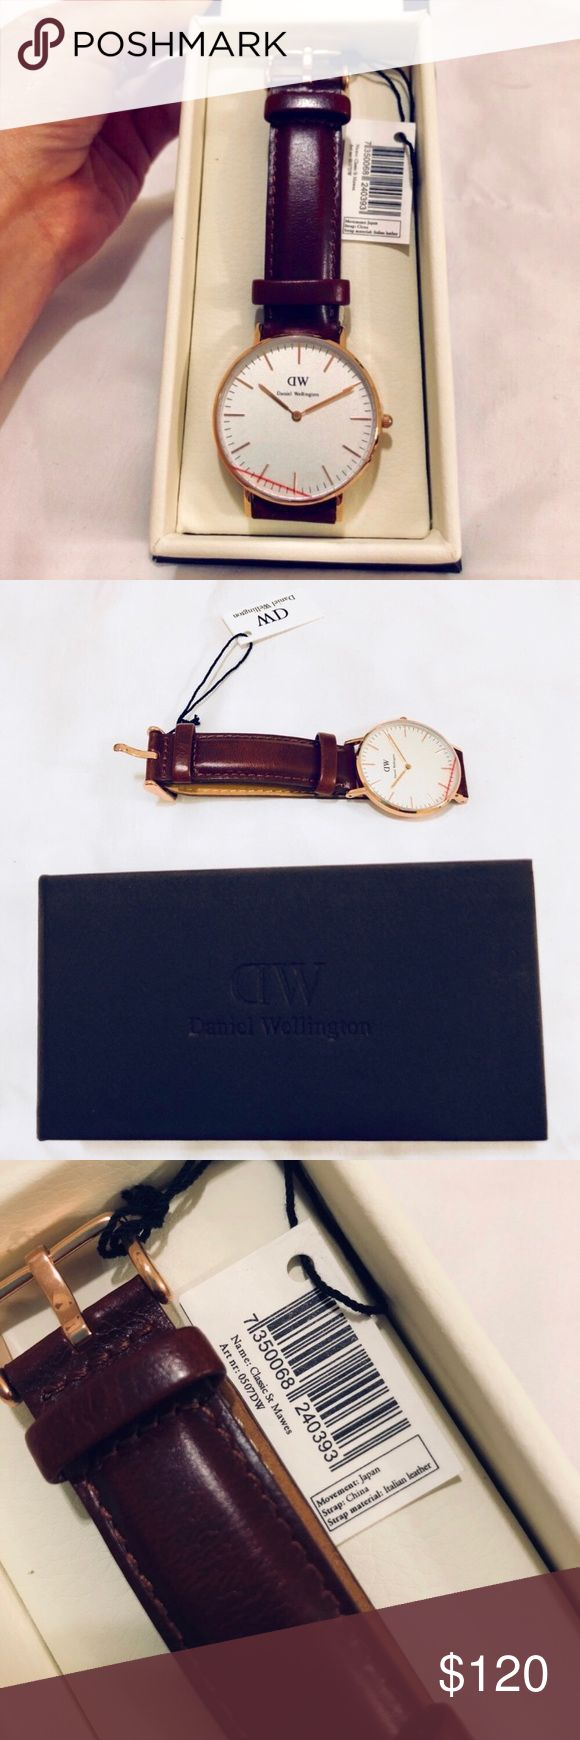 Daniel Wellington Classic St. Mawes Reposh! The seller guaranteed authentic. I bought this for my boyfriend but it was the wrong size. Rose gold and brown leather band. The band is interchangeable. It is a classic, minimalist must have watch in absolutely perfect condition!   My wrist is too small or I would keep it myself! All pictures are of the actual watch in my possession. Please let me know if you have any questions! Open to offers. Just trying to make some money back! Daniel…